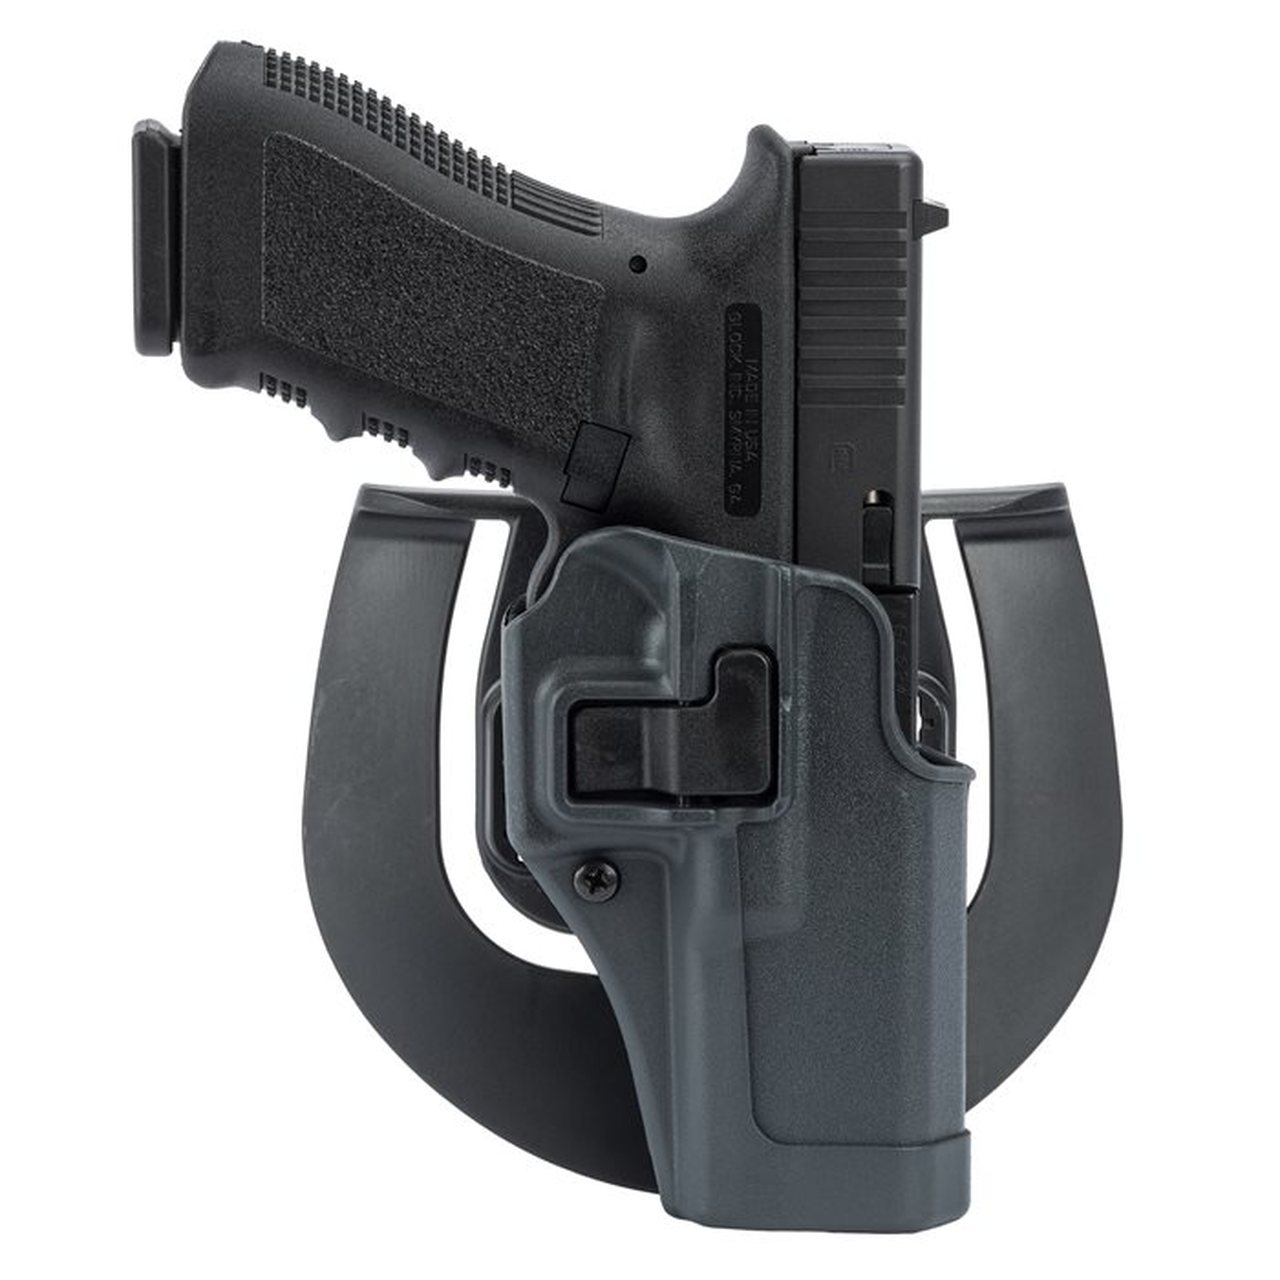 THE TOP GLOCK 36 HOLSTERS